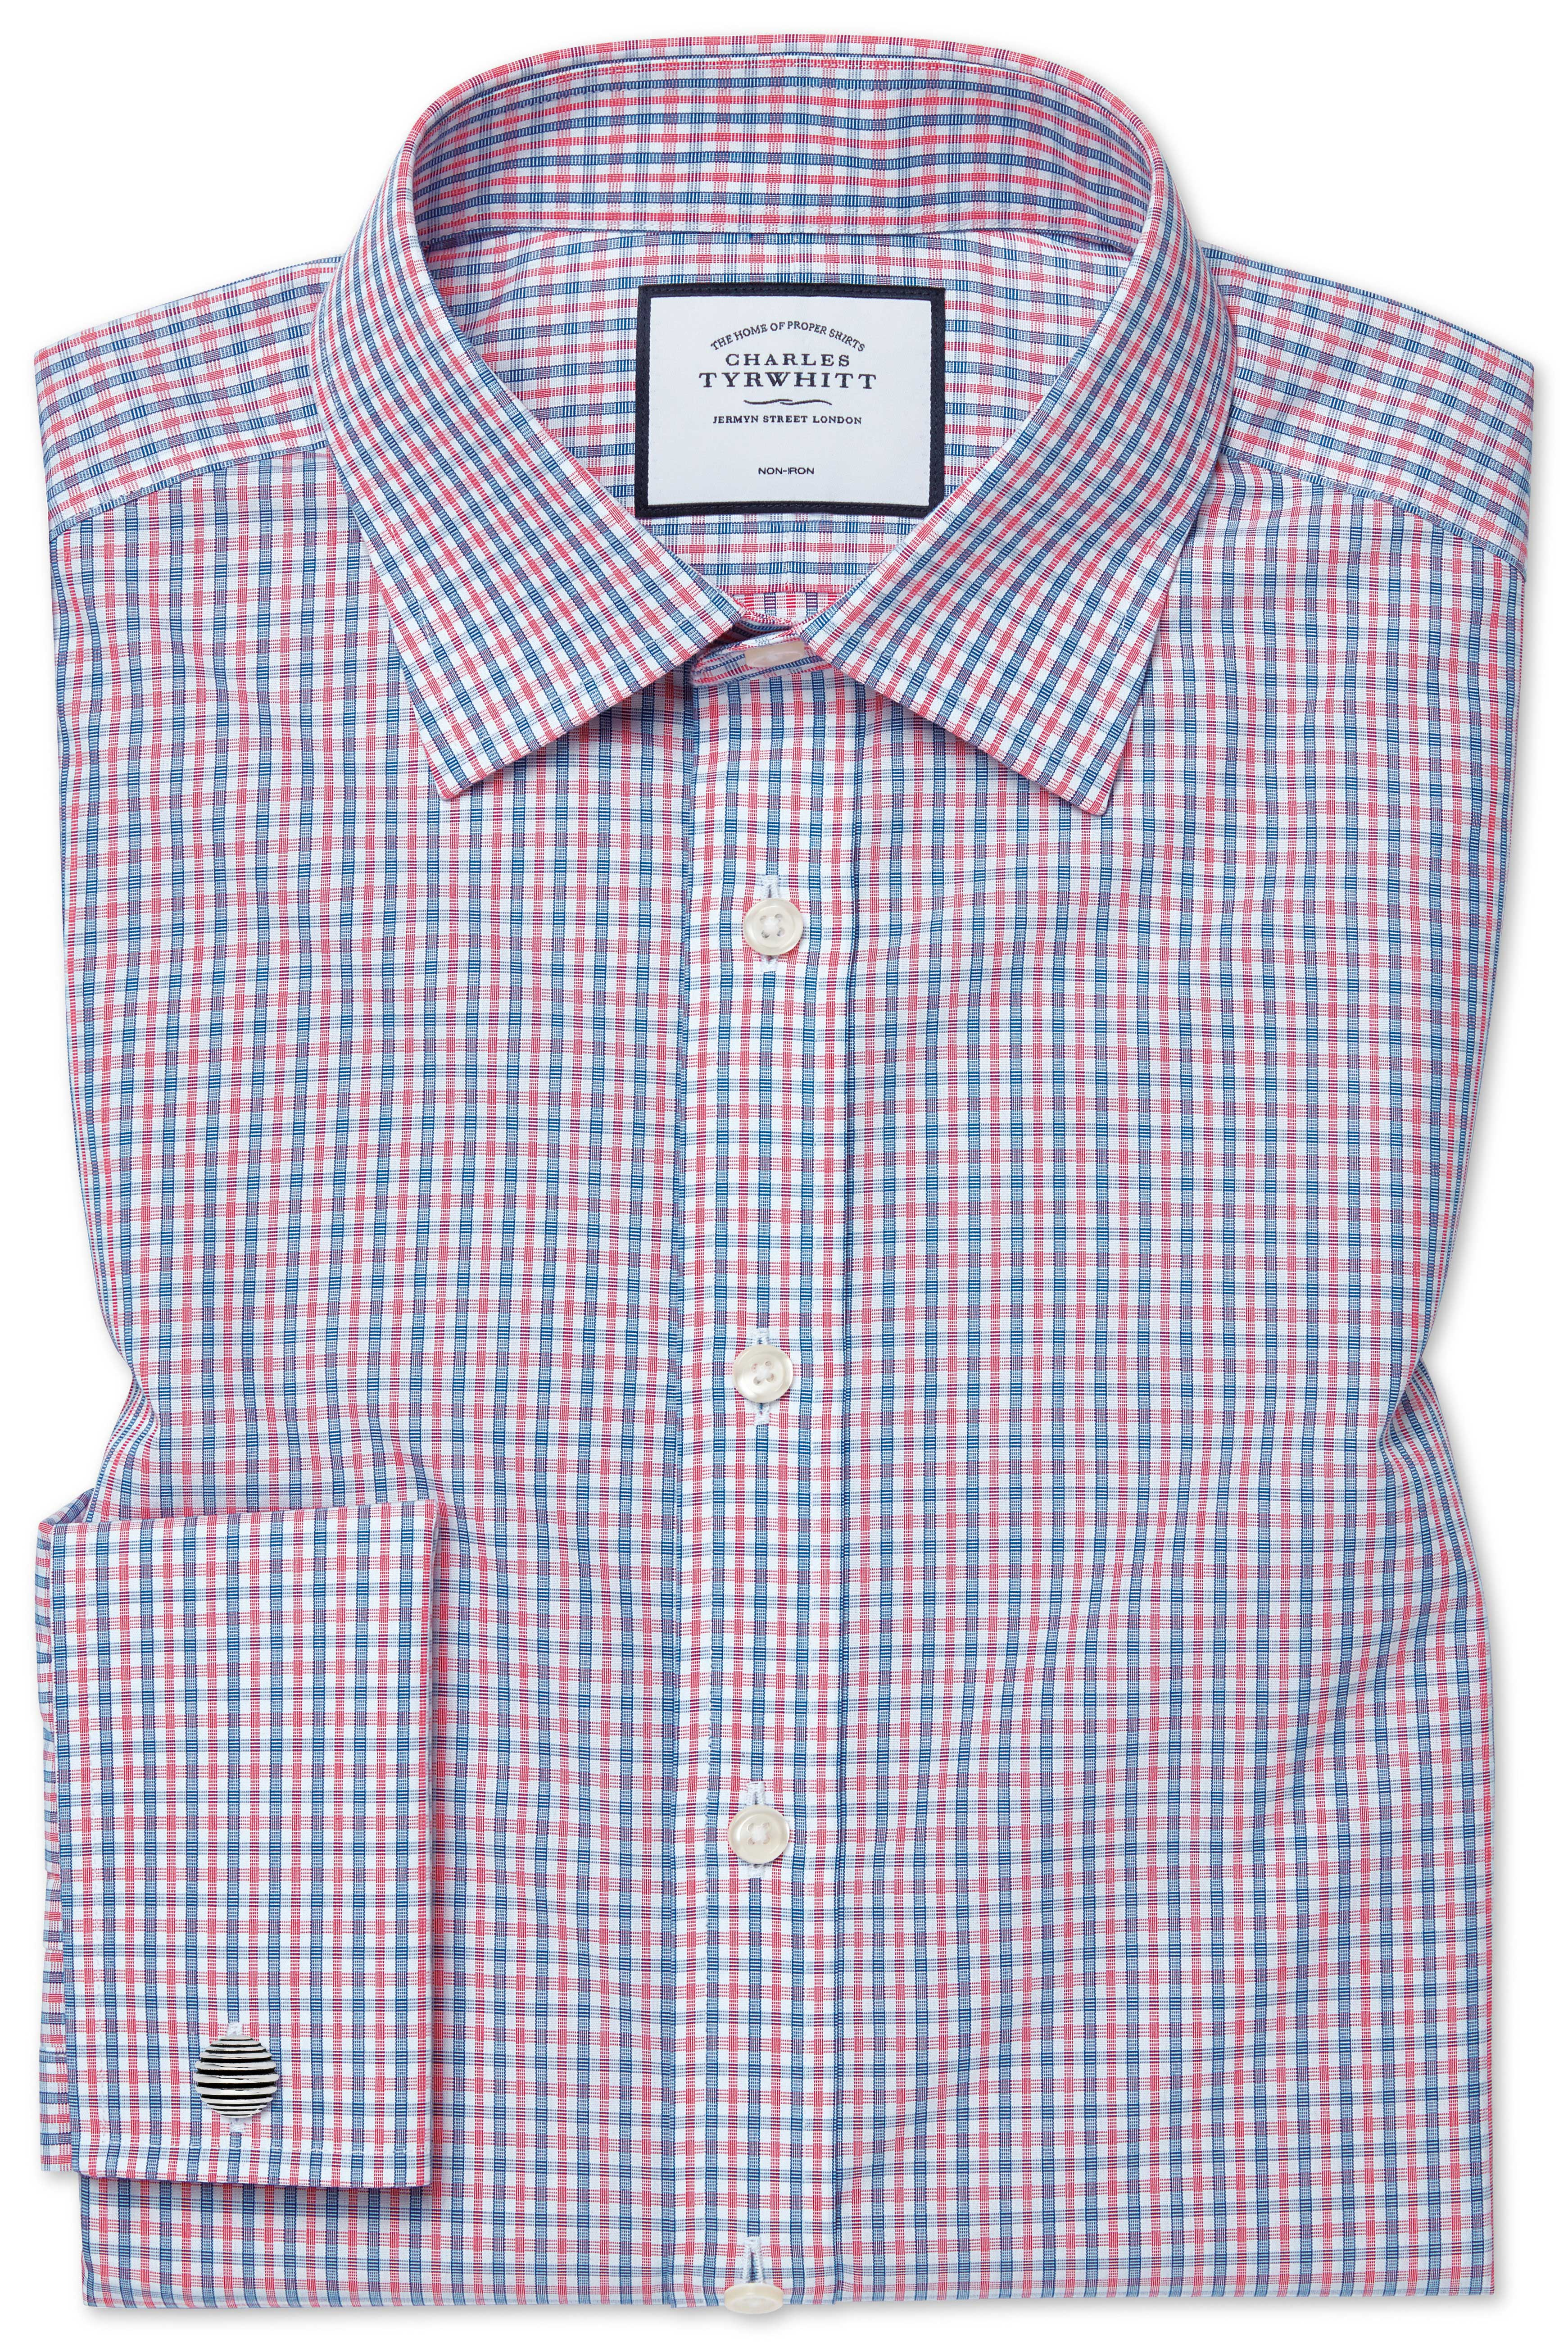 Extra Slim Fit Cutaway Non-Iron Poplin Blue and Red Cotton Formal Shirt Double Cuff Size 16/33 by Ch